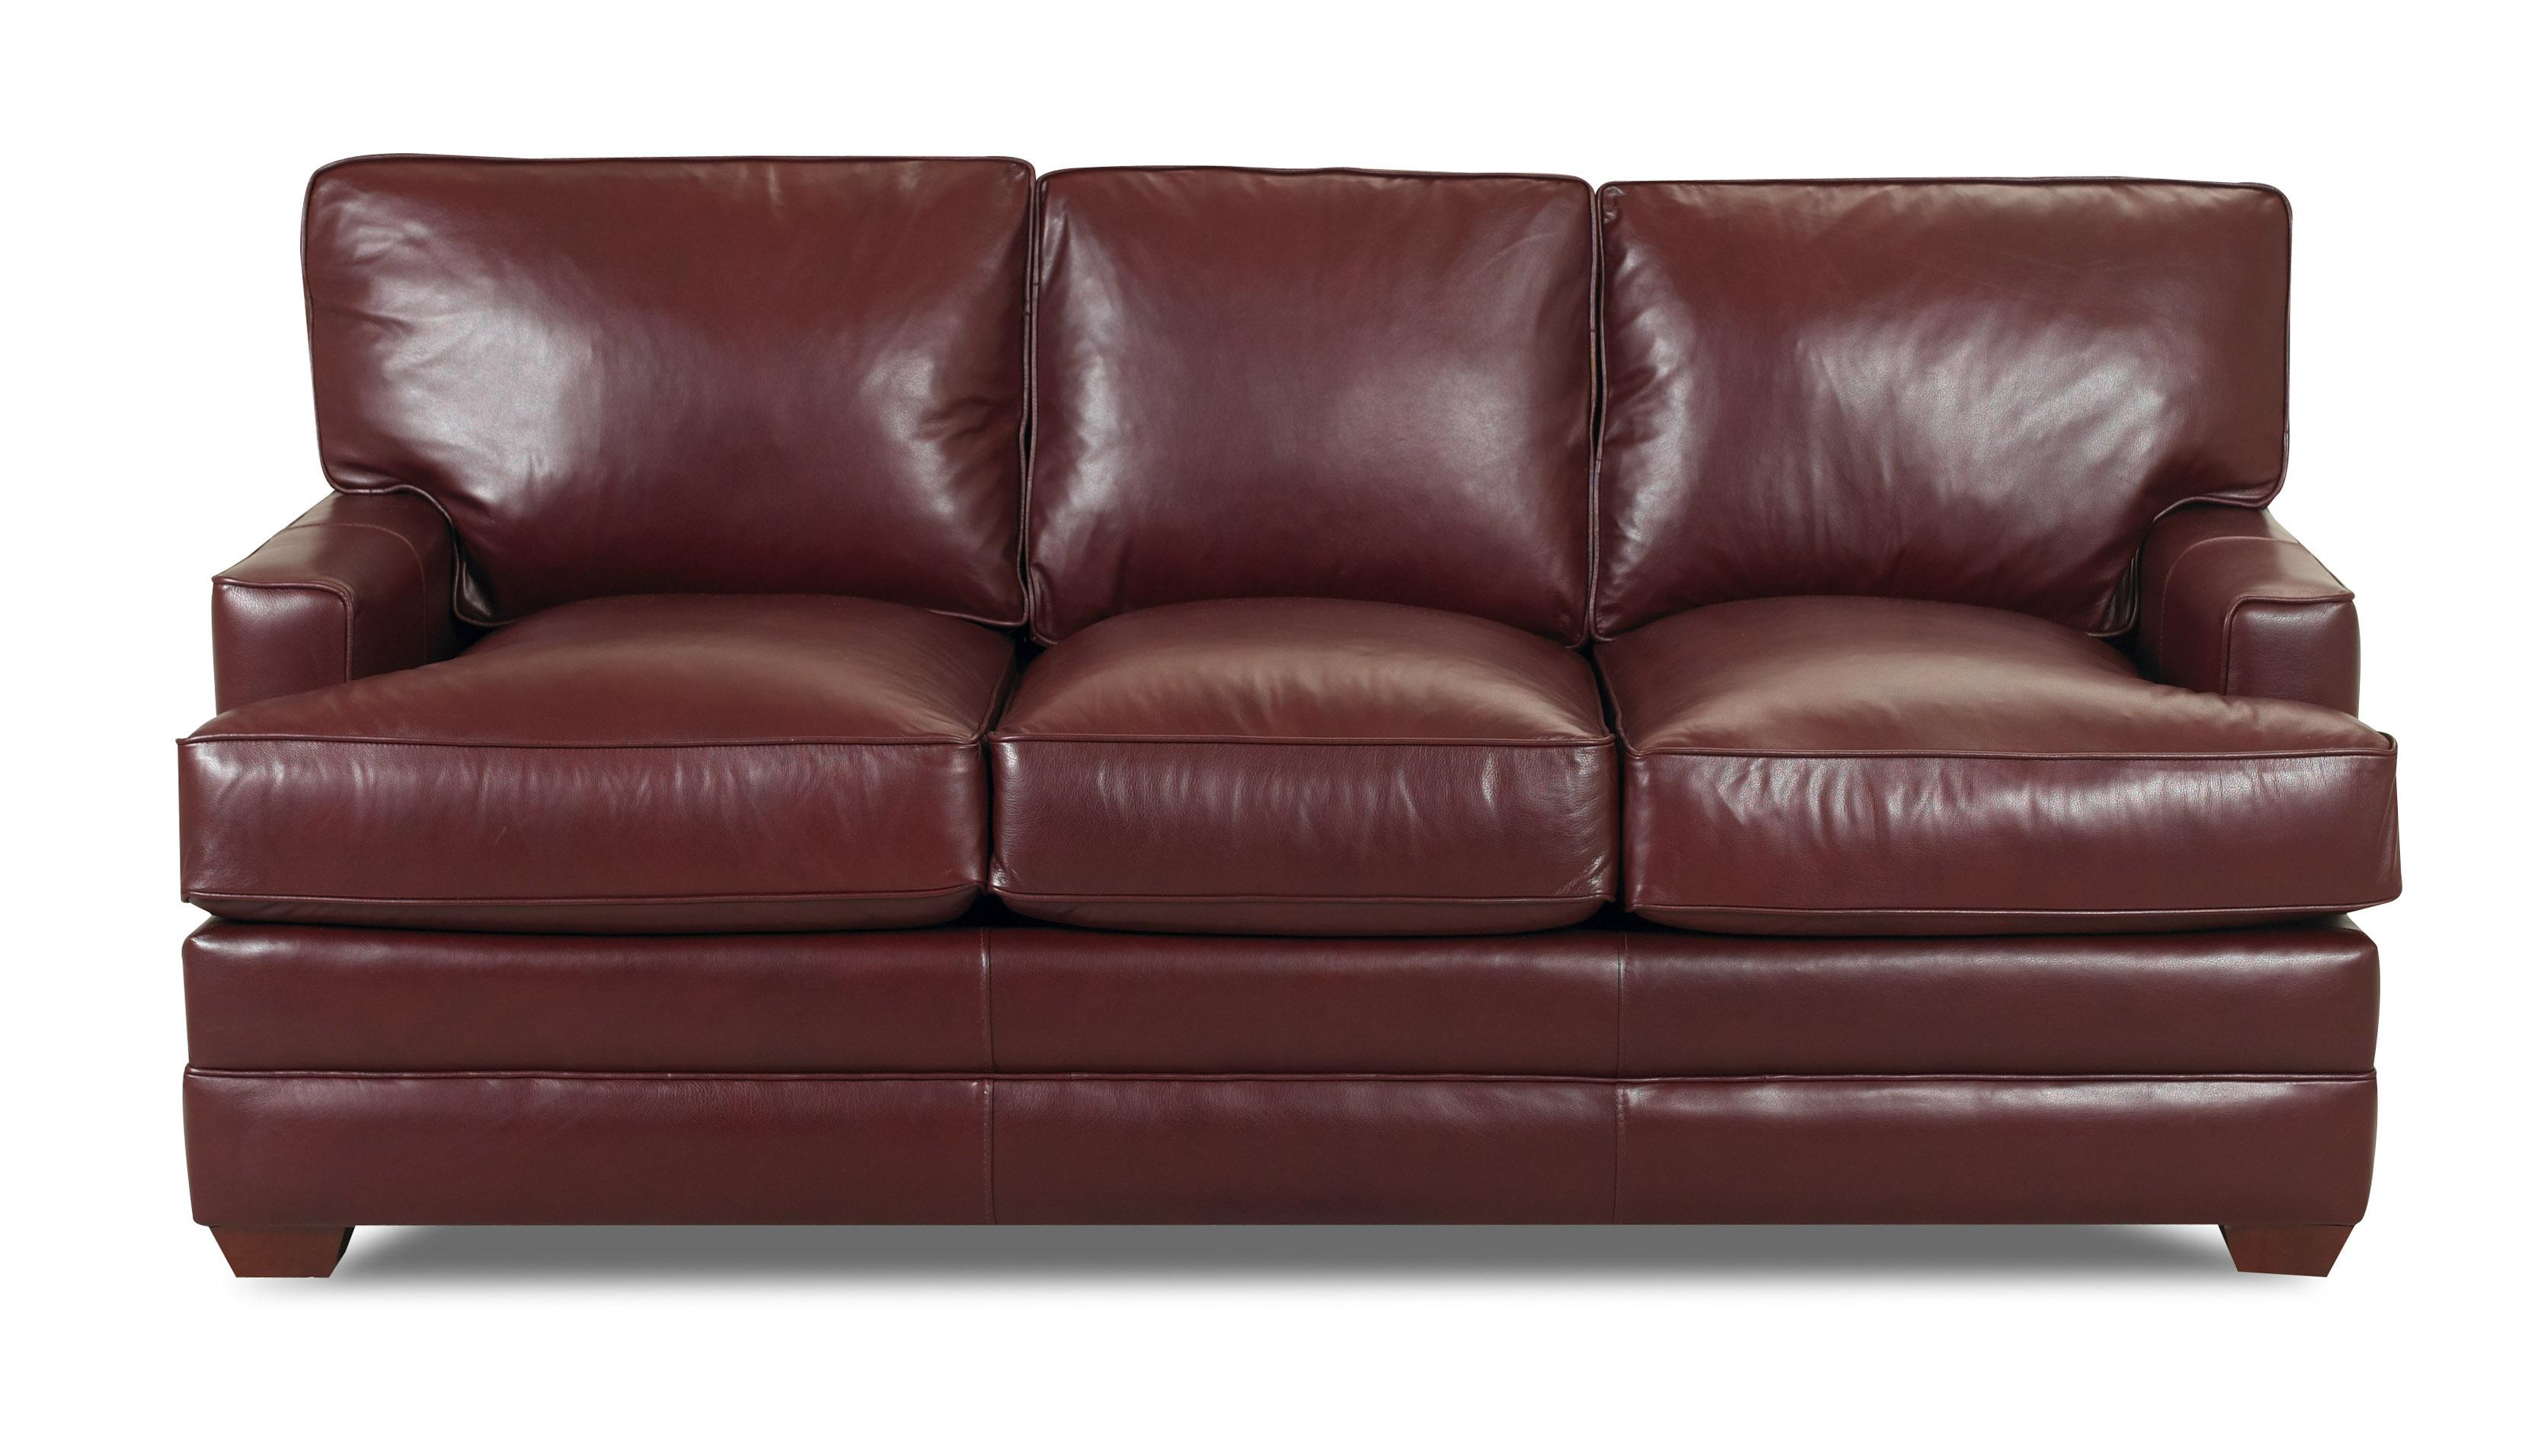 Pantego 3-Seater Stationary Sofa by Klaussner at Lapeer Furniture & Mattress Center